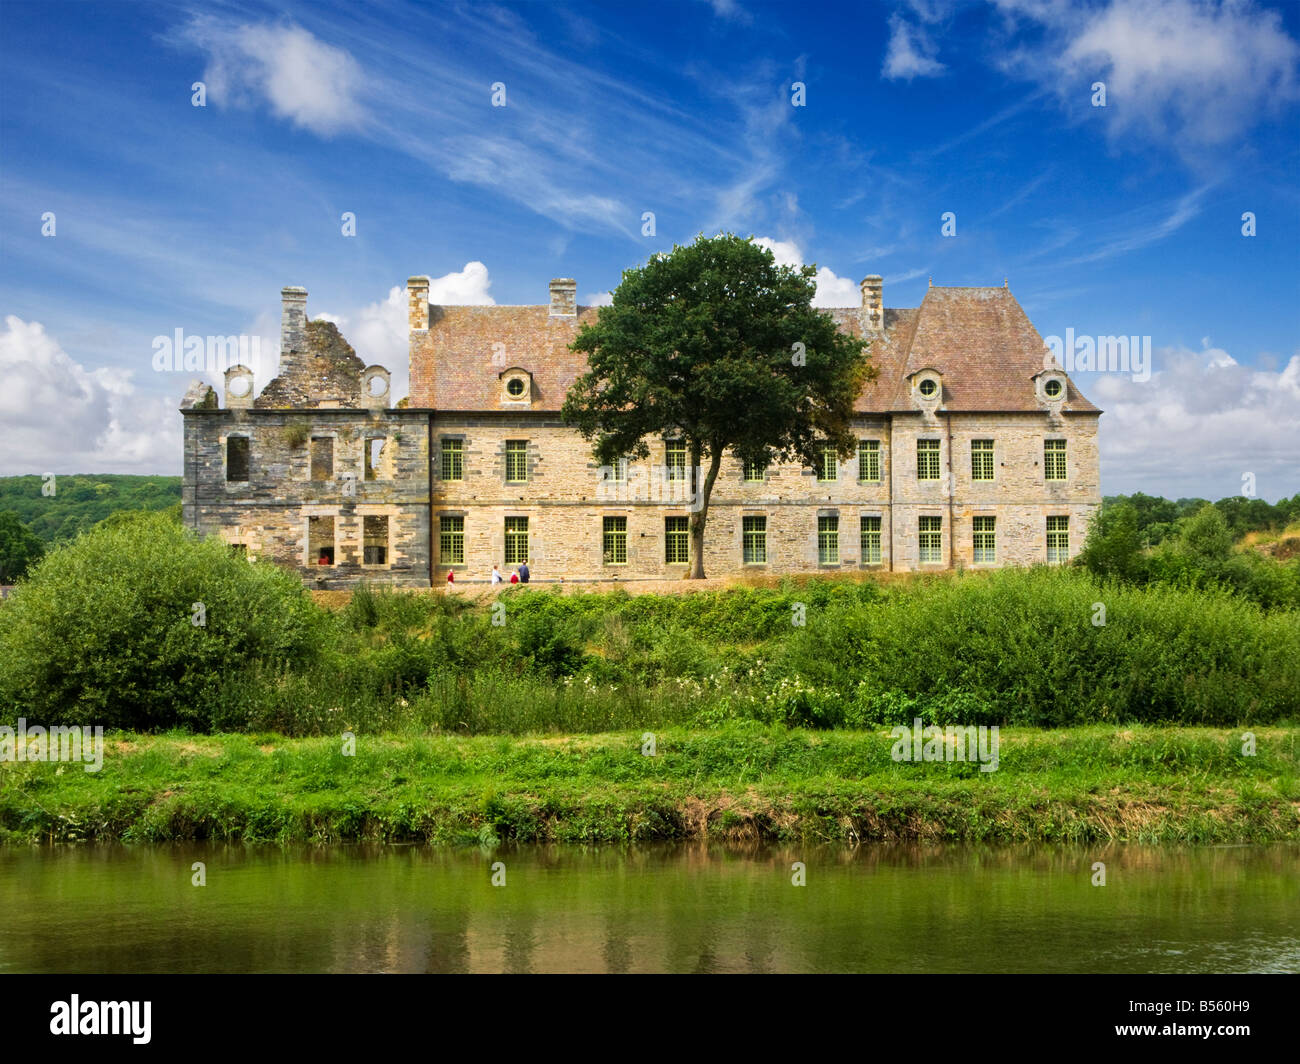 The Cistercian Abbey de Bon Repos on the Nantes Brest Canal, Cotes d'Armor, Brittany, France, Europe - Stock Image